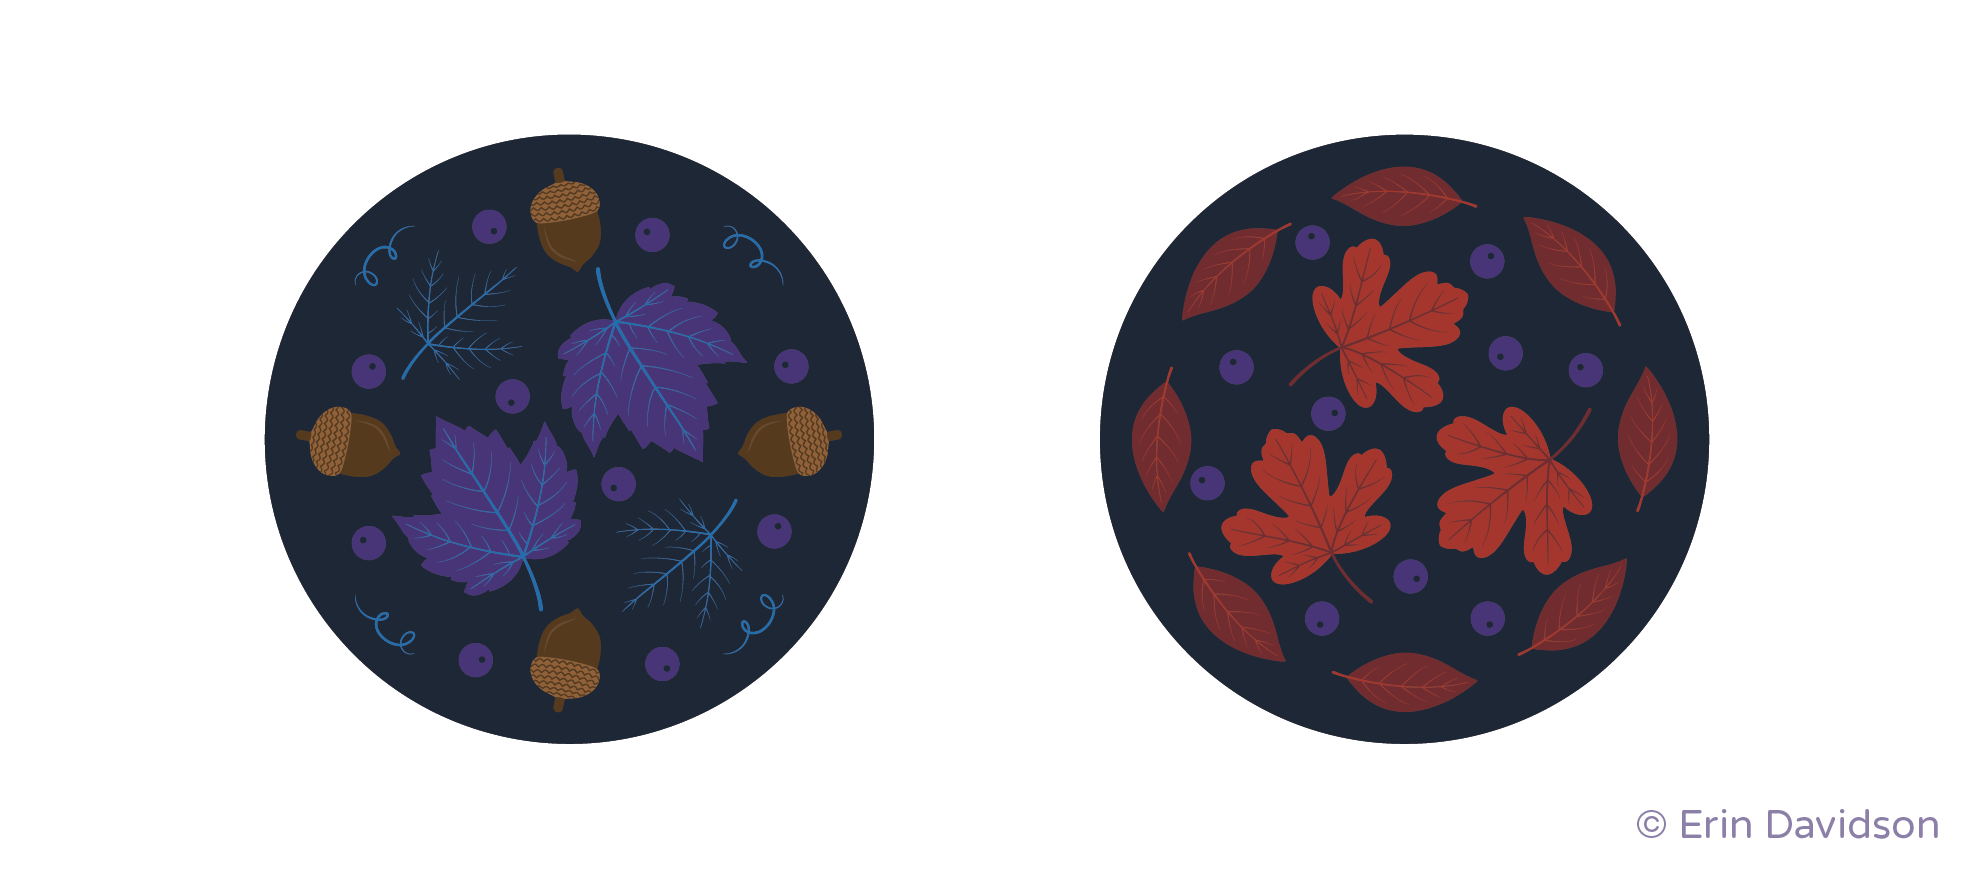 2 circle-shaped spot graphics. 1st graphic features brown acorns, purple berries and blue vine motifs circling 2 purple maple leaves. 2nd graphic features red plant leaves and purple berries circling 3 orange maple leaves.